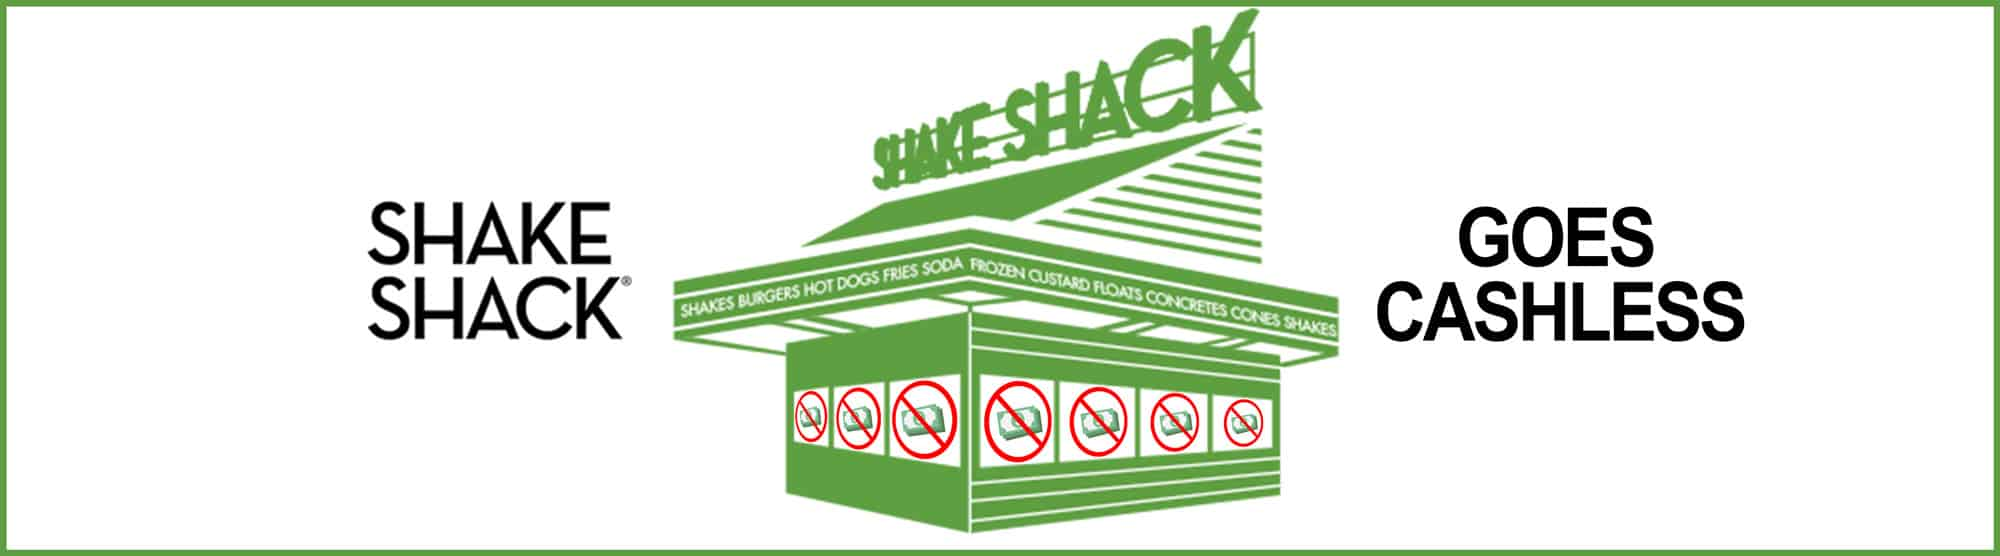 Shakeshack goes Cashless